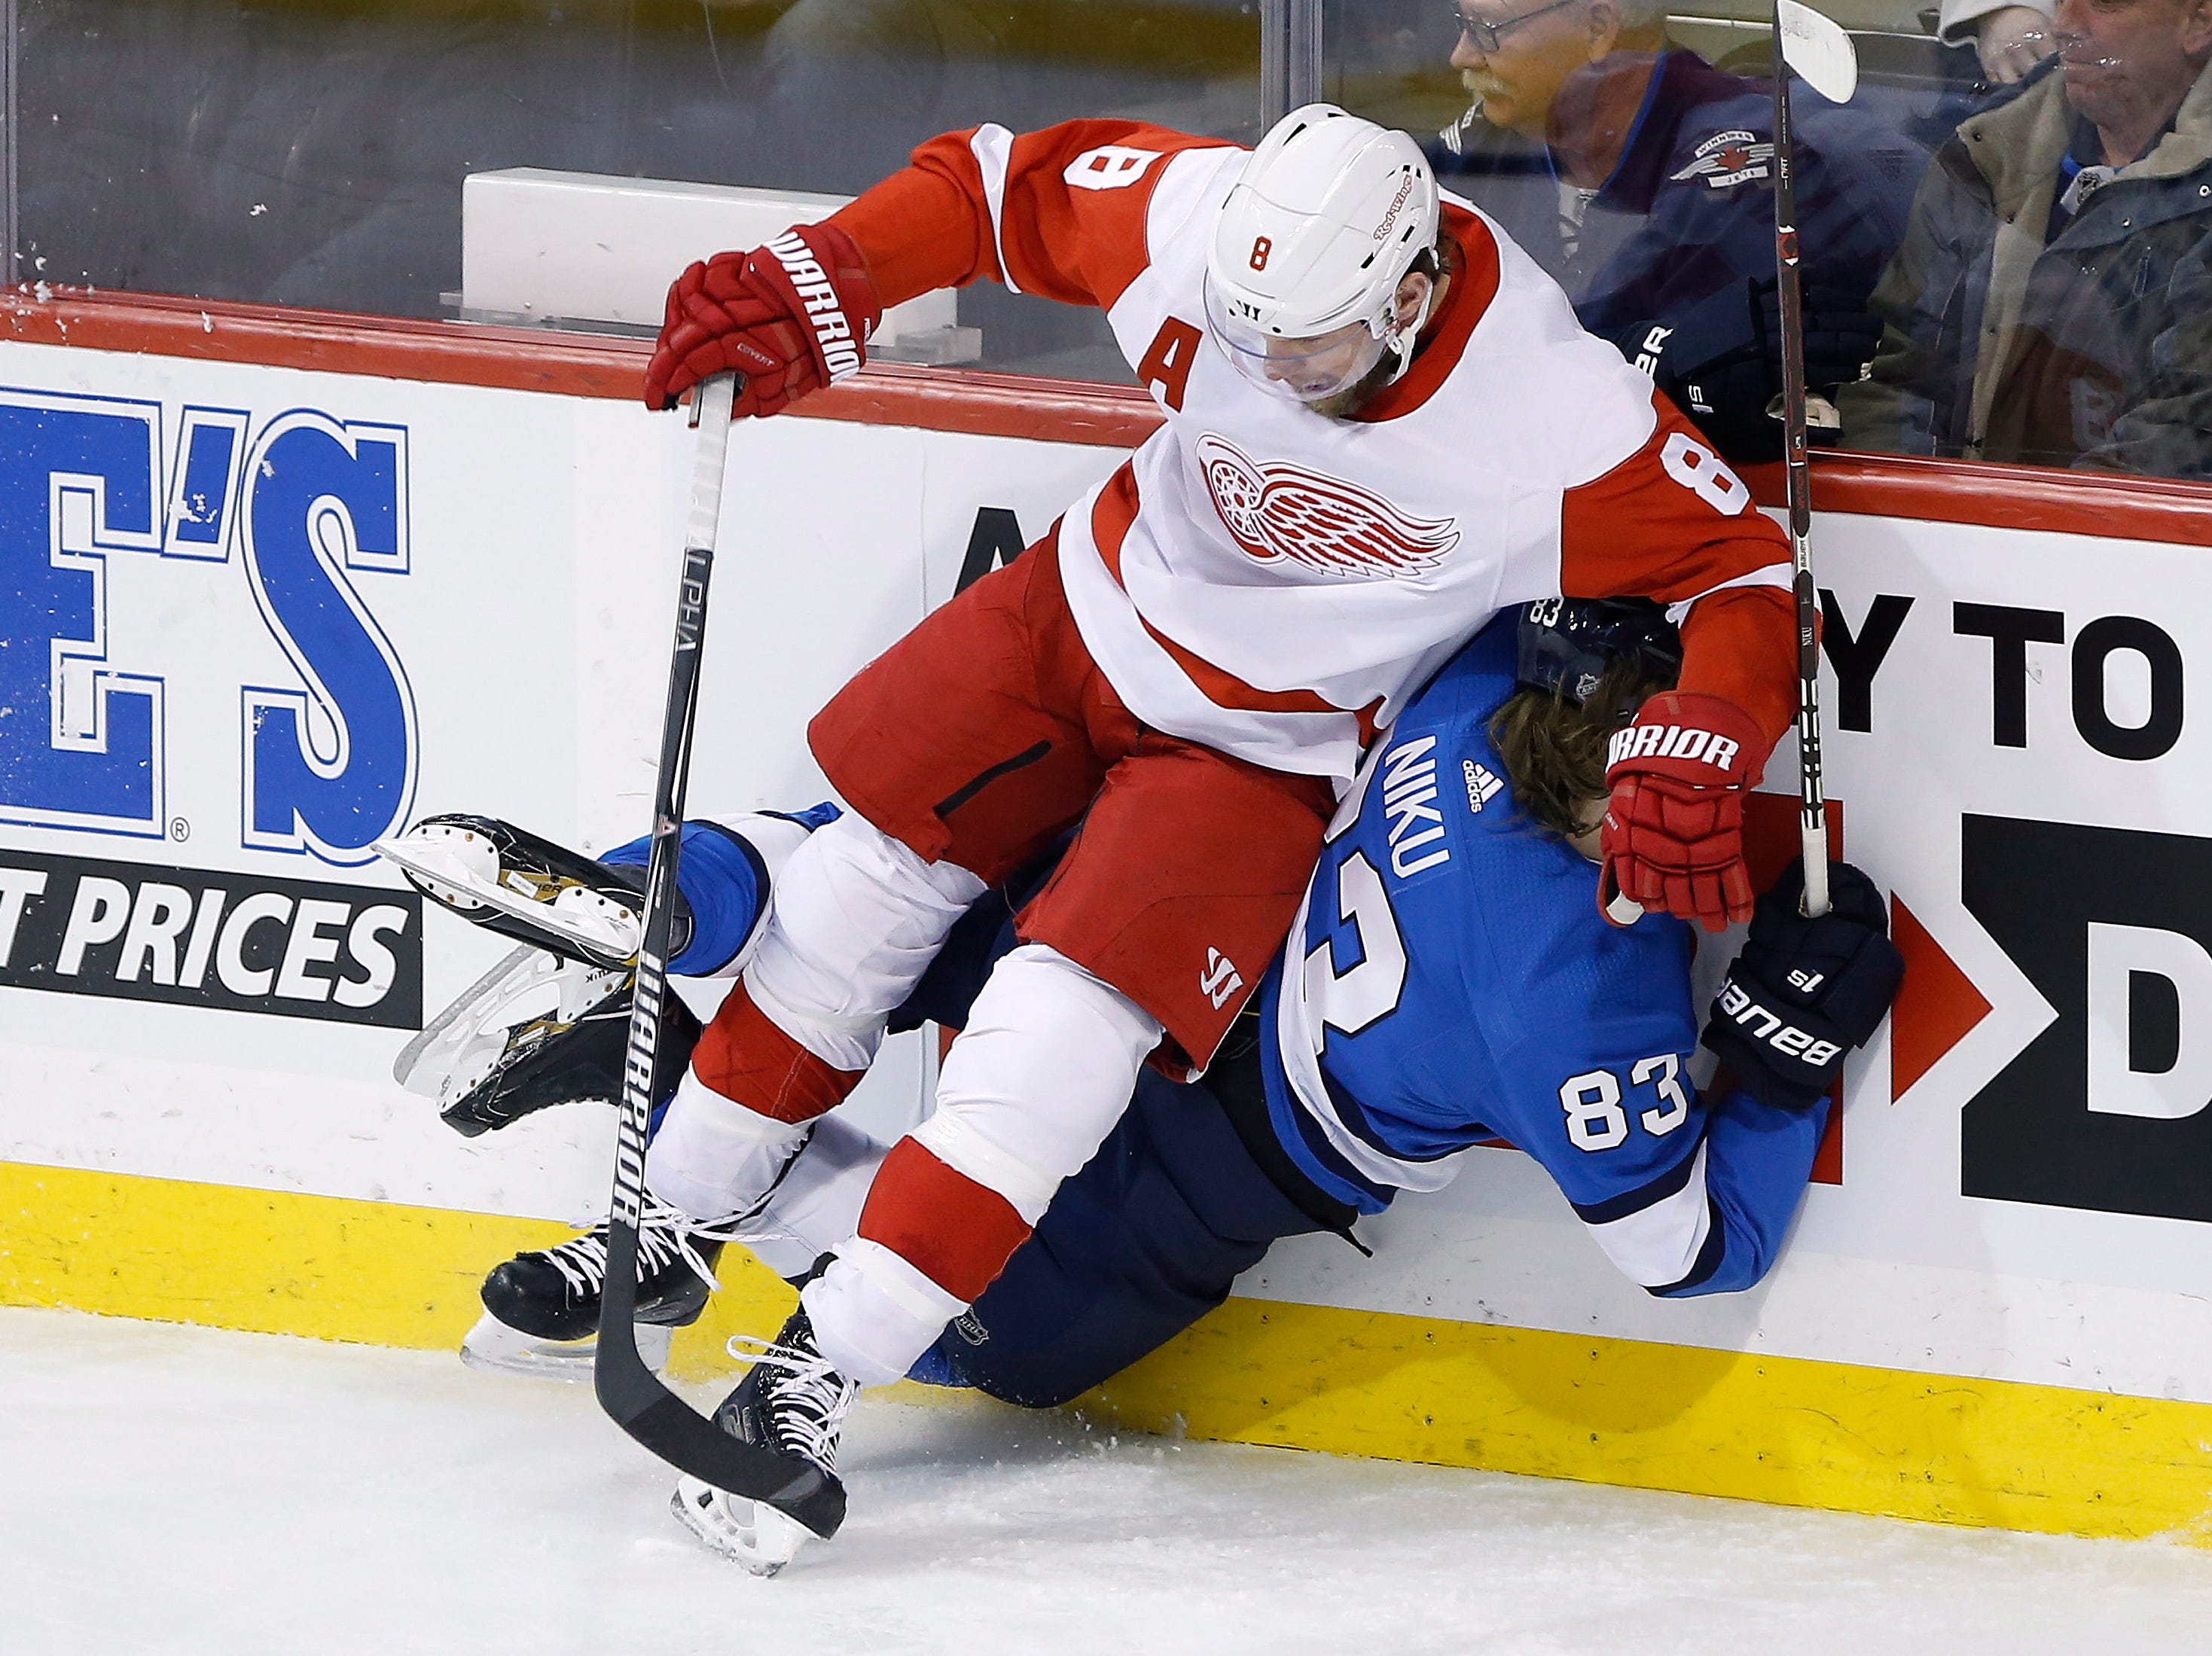 Winnipeg Jets' Sami Niku (83) is checked by Detroit Red Wings' Justin Abdelkader (8) during the first period.